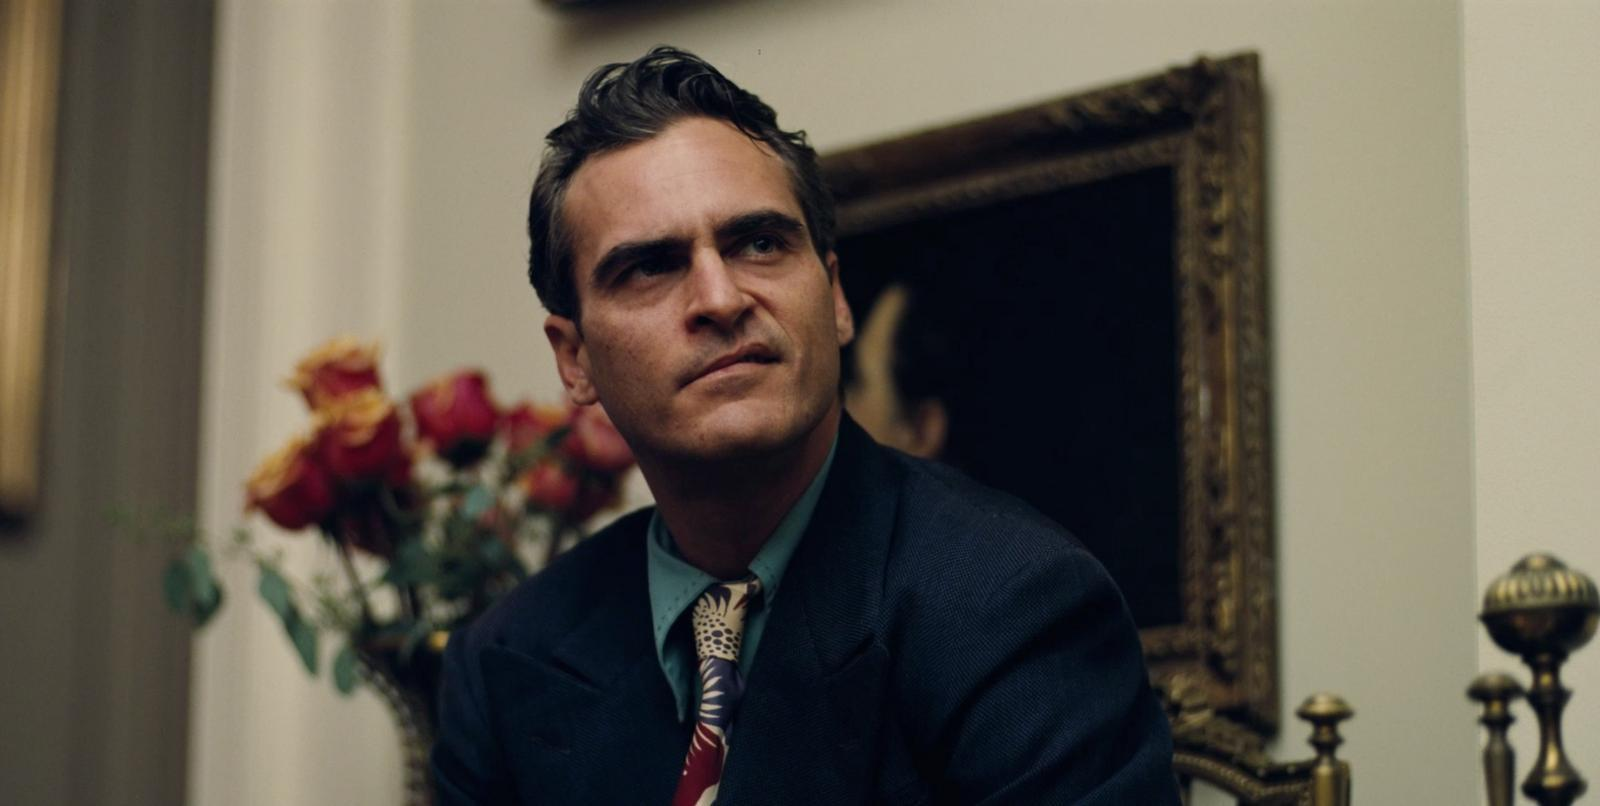 Joaquin Phoenix as the troubled Freddie Quell in The Master (2012)